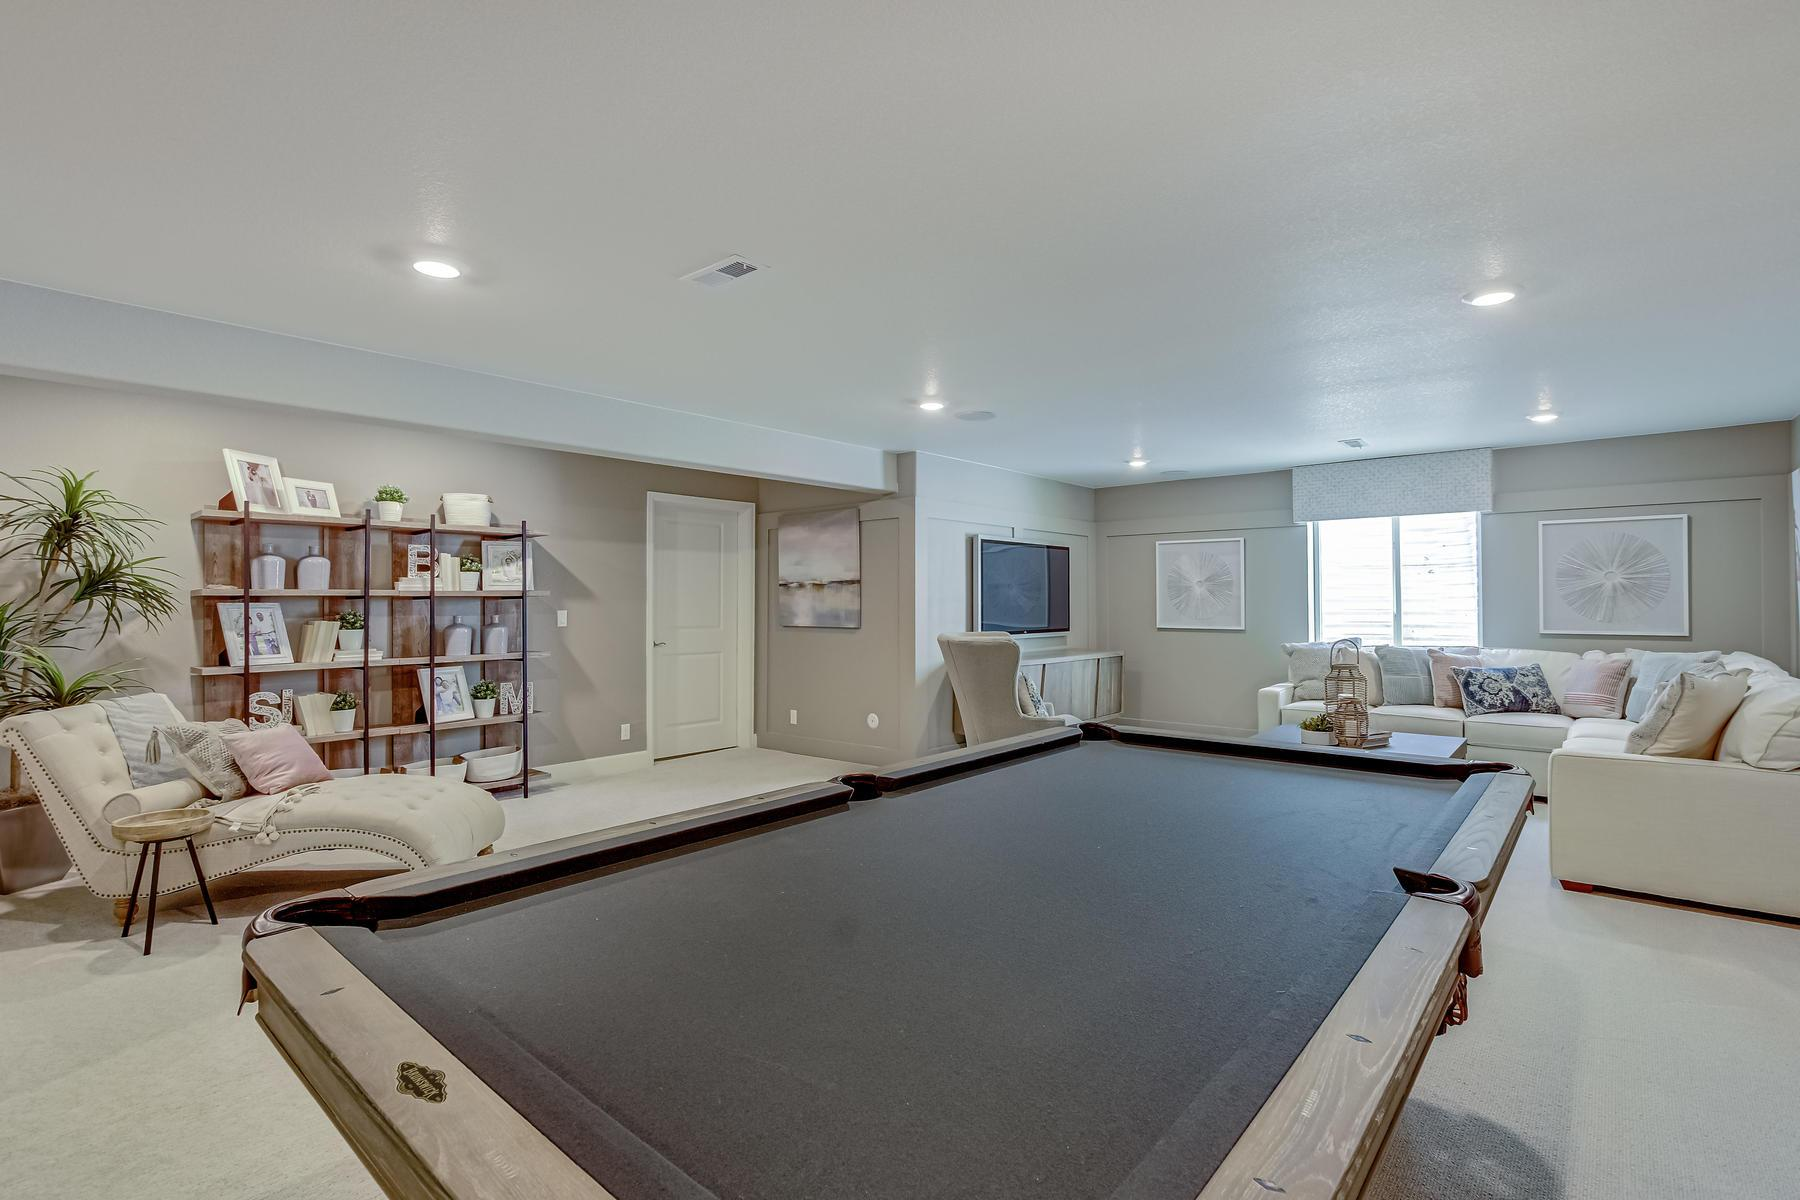 Living Area featured in the Aspen By OakwoodLife in Denver, CO